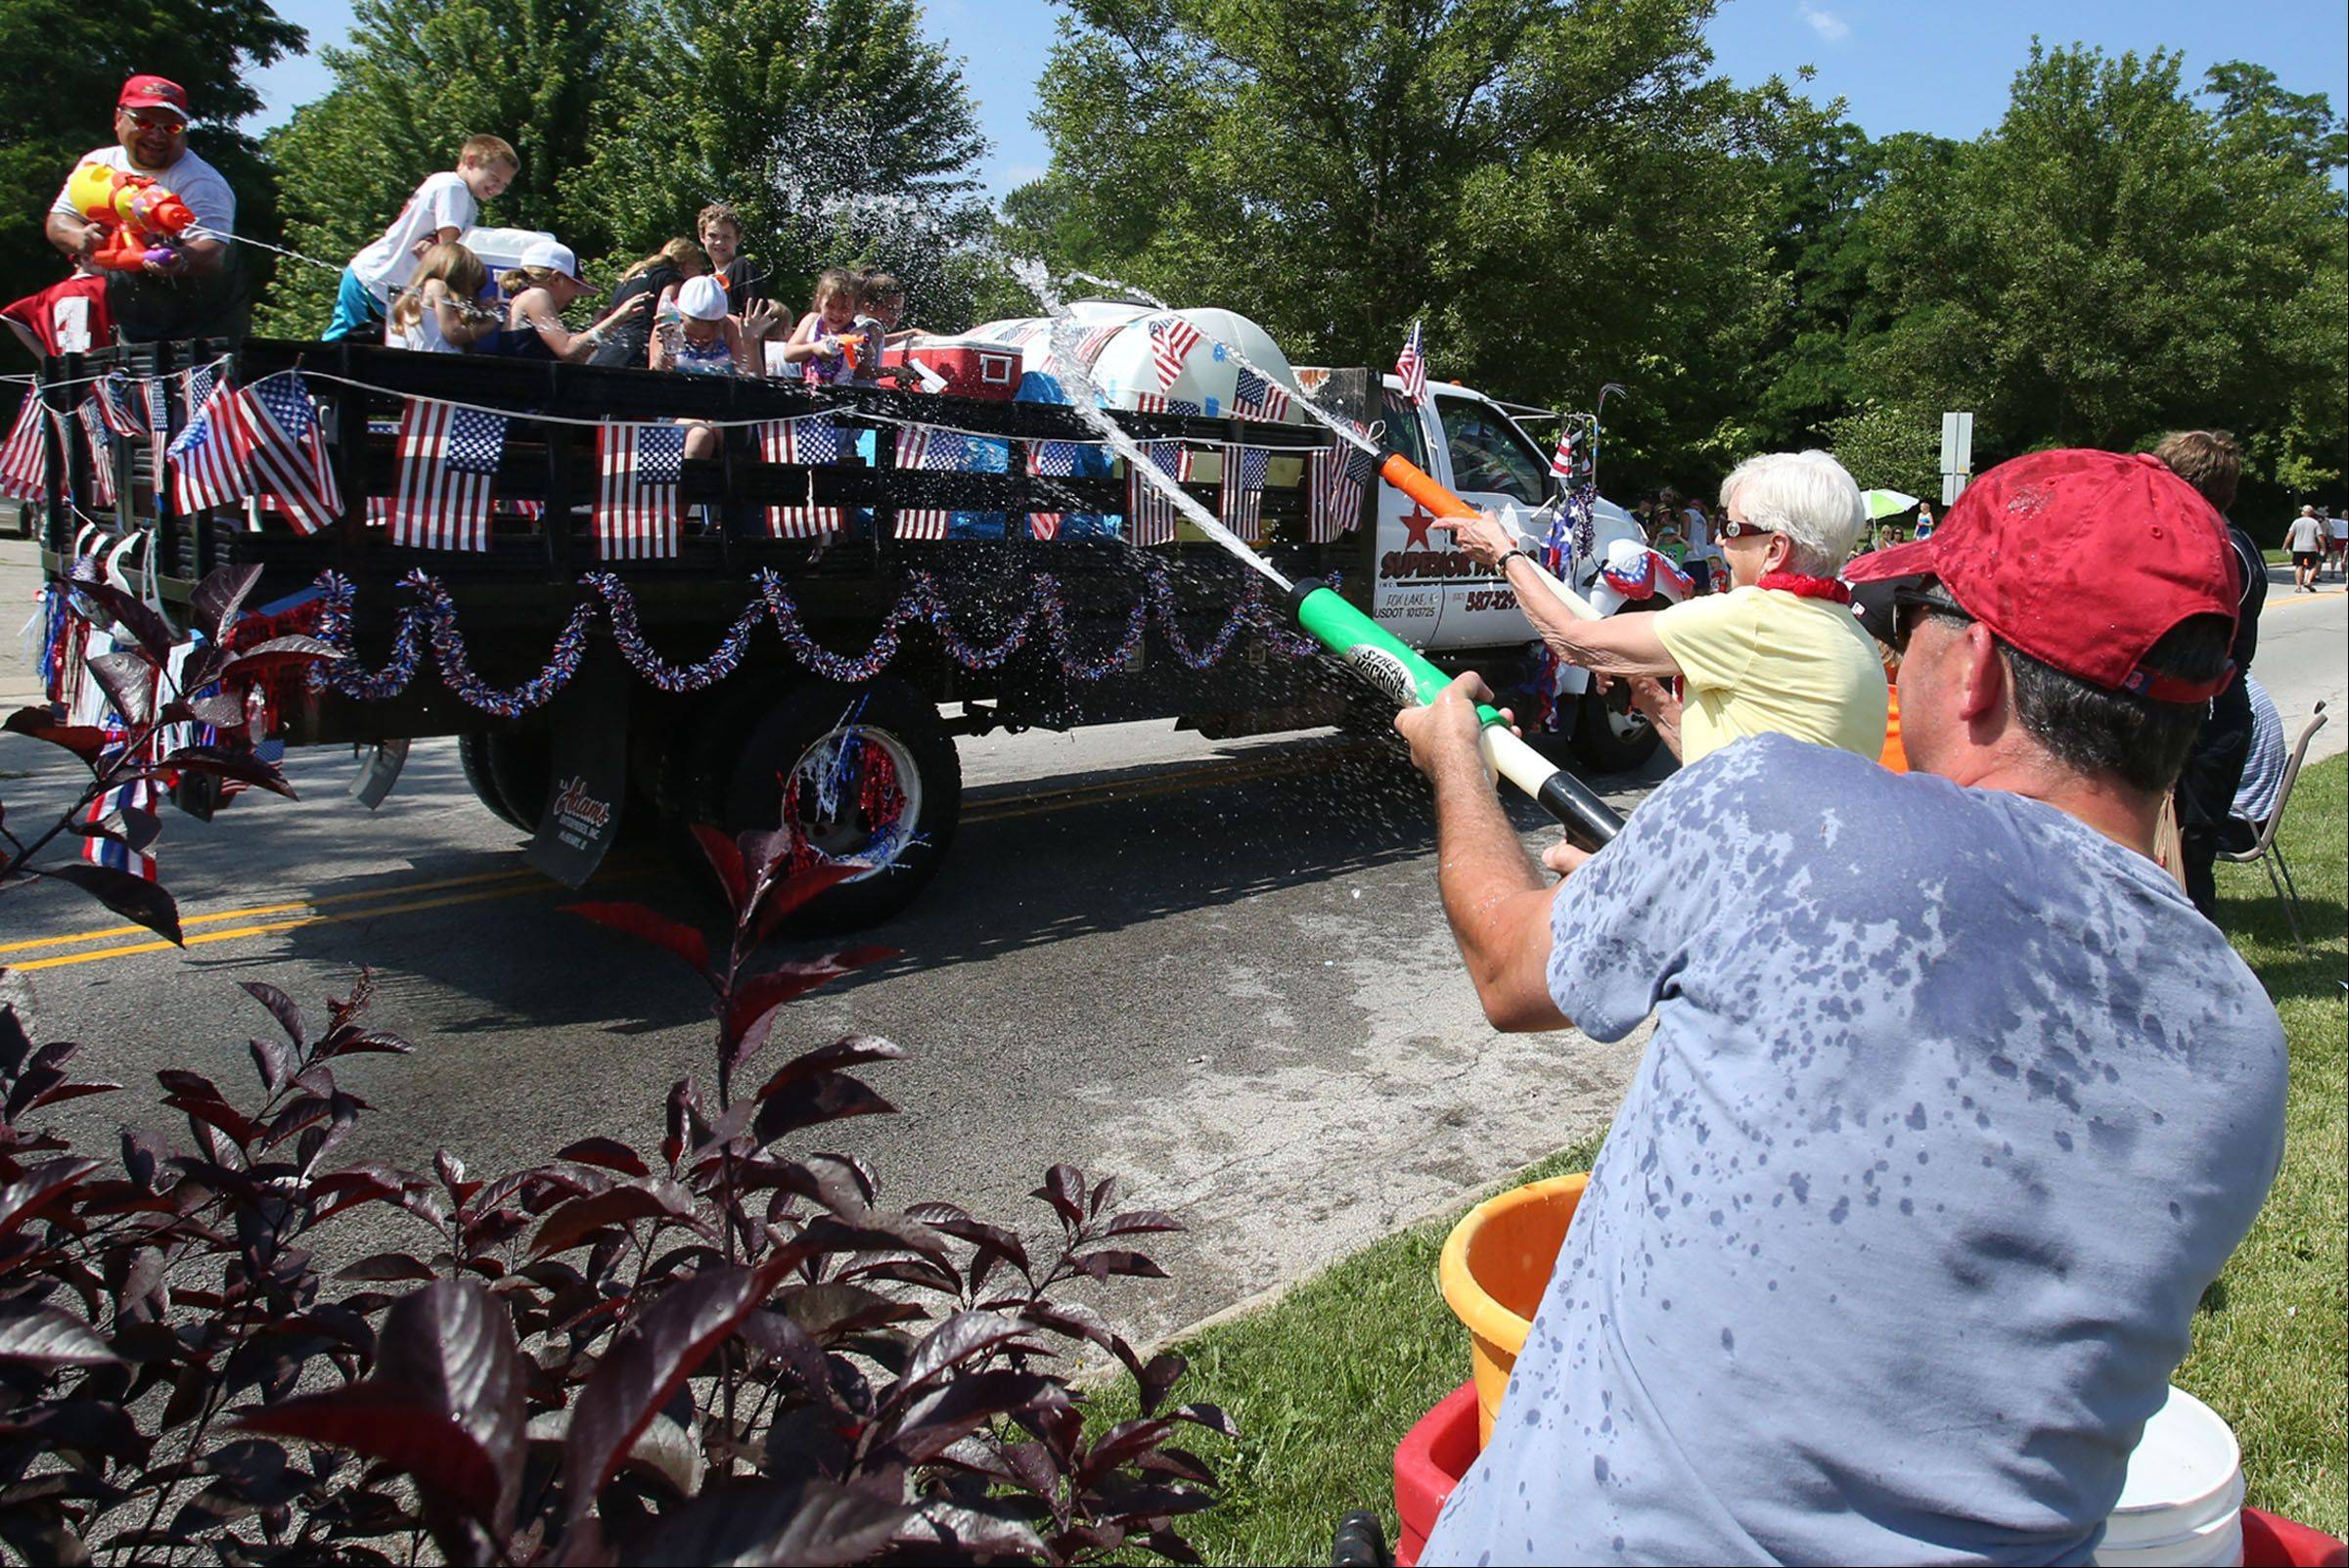 James Vass and his mom, Angie, both of Fox Lake, use water cannons Saturday to sneak-attack floats that travel past their spot along the Celebrate Fox Lake parade on Grand Avenue after starting at Grant High School.